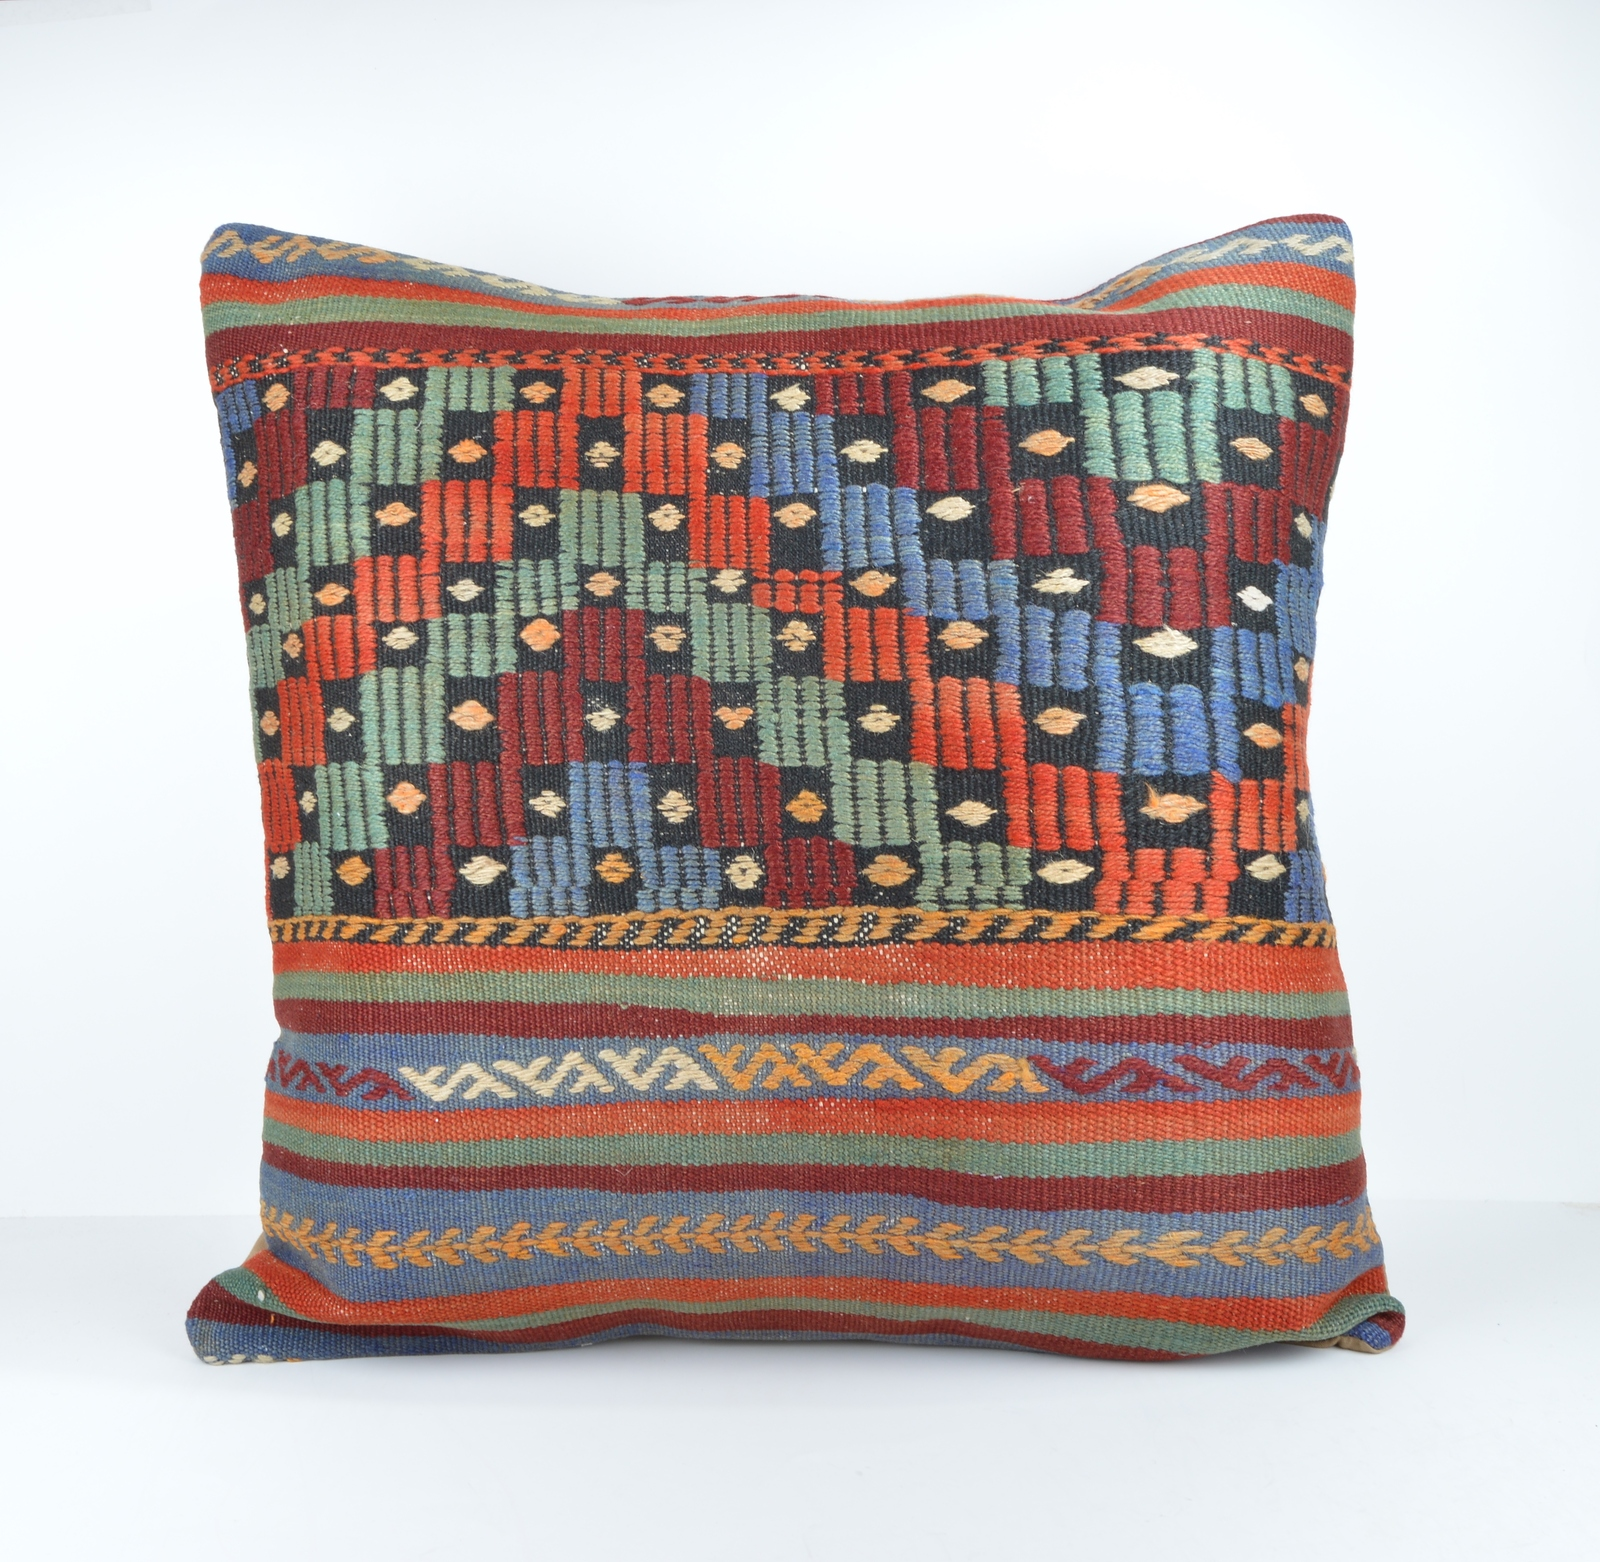 Big Throw Pillow Covers : 24x24 large kilim pillow big pillow decorative pillow cover large cushion case - Pillowcases